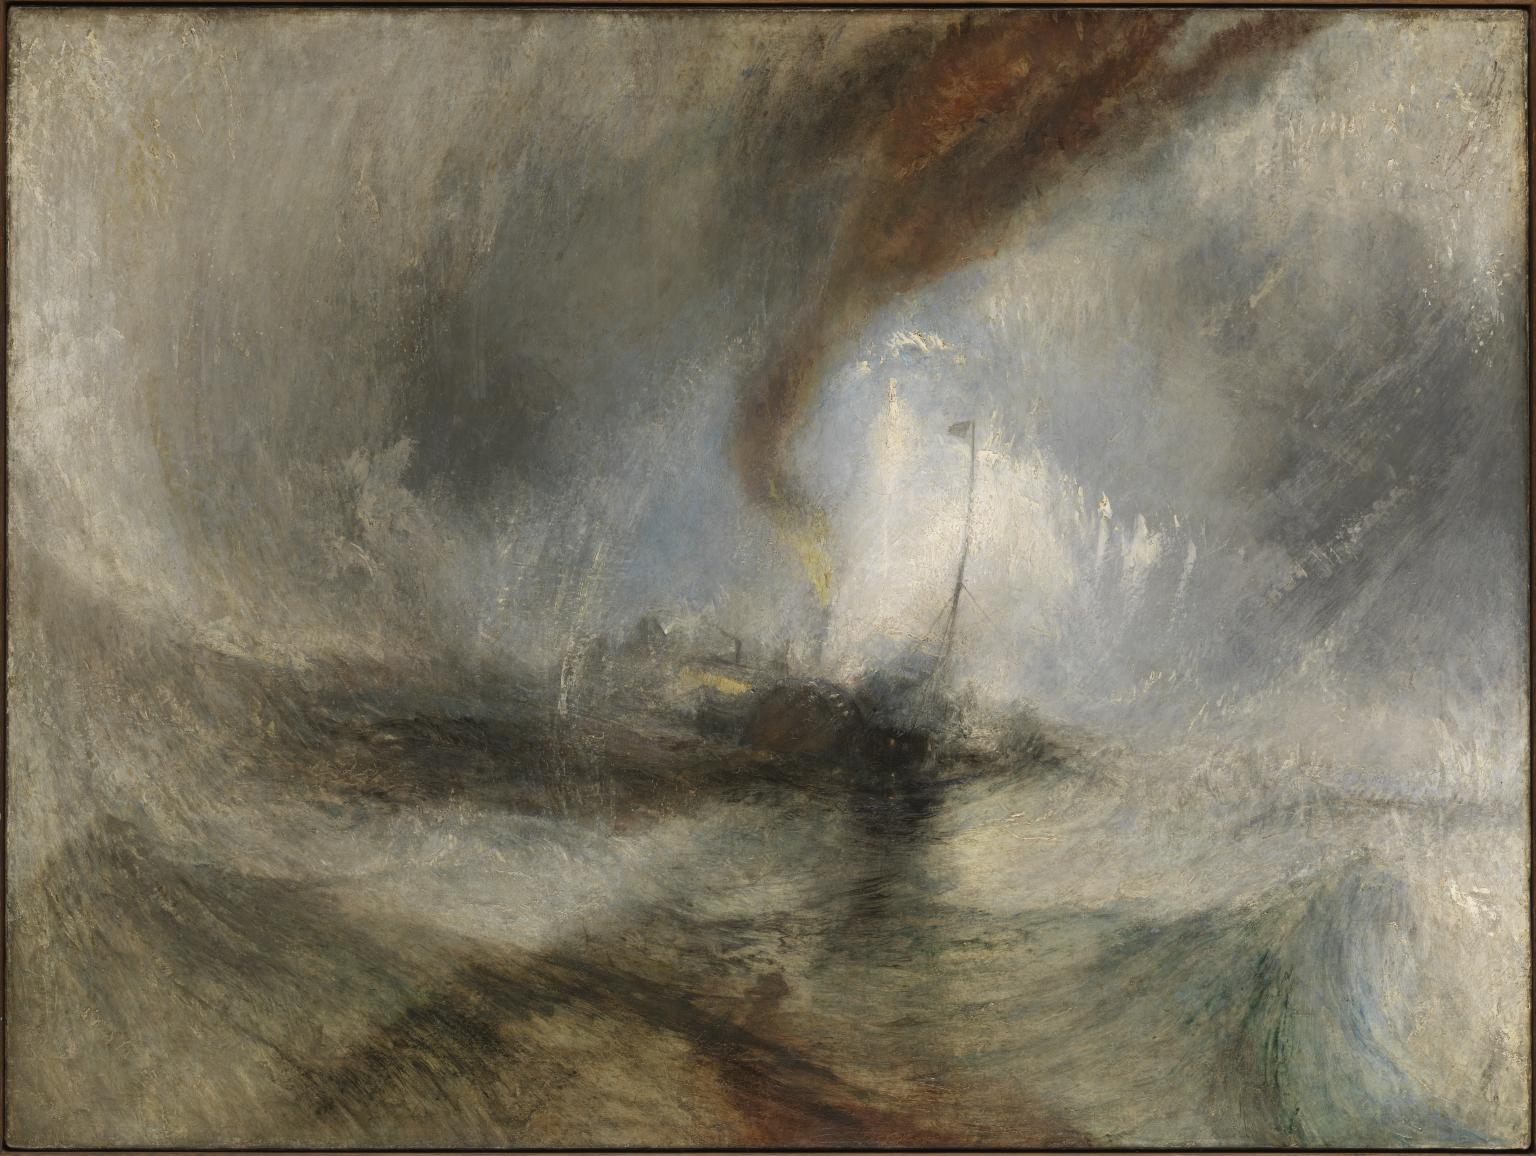 Joseph Mallord William Turner, 'Snow Storm - Steam-Boat off a Harbour's Mouth,  1842 @ Tate